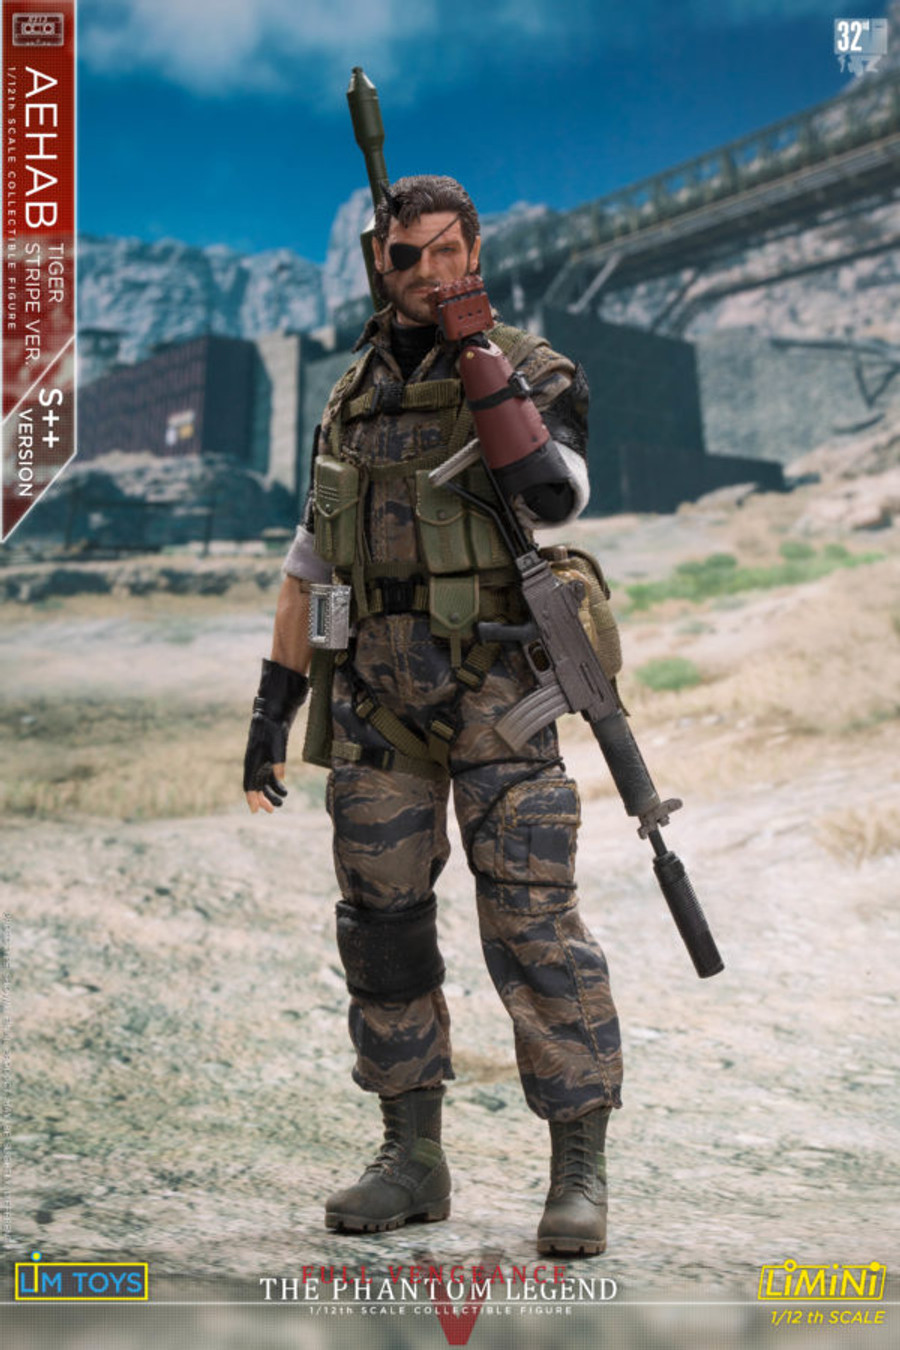 LIM Toys - 1/12 Scale - Aehab Tiger Stripe Figure Special (S++ Version)